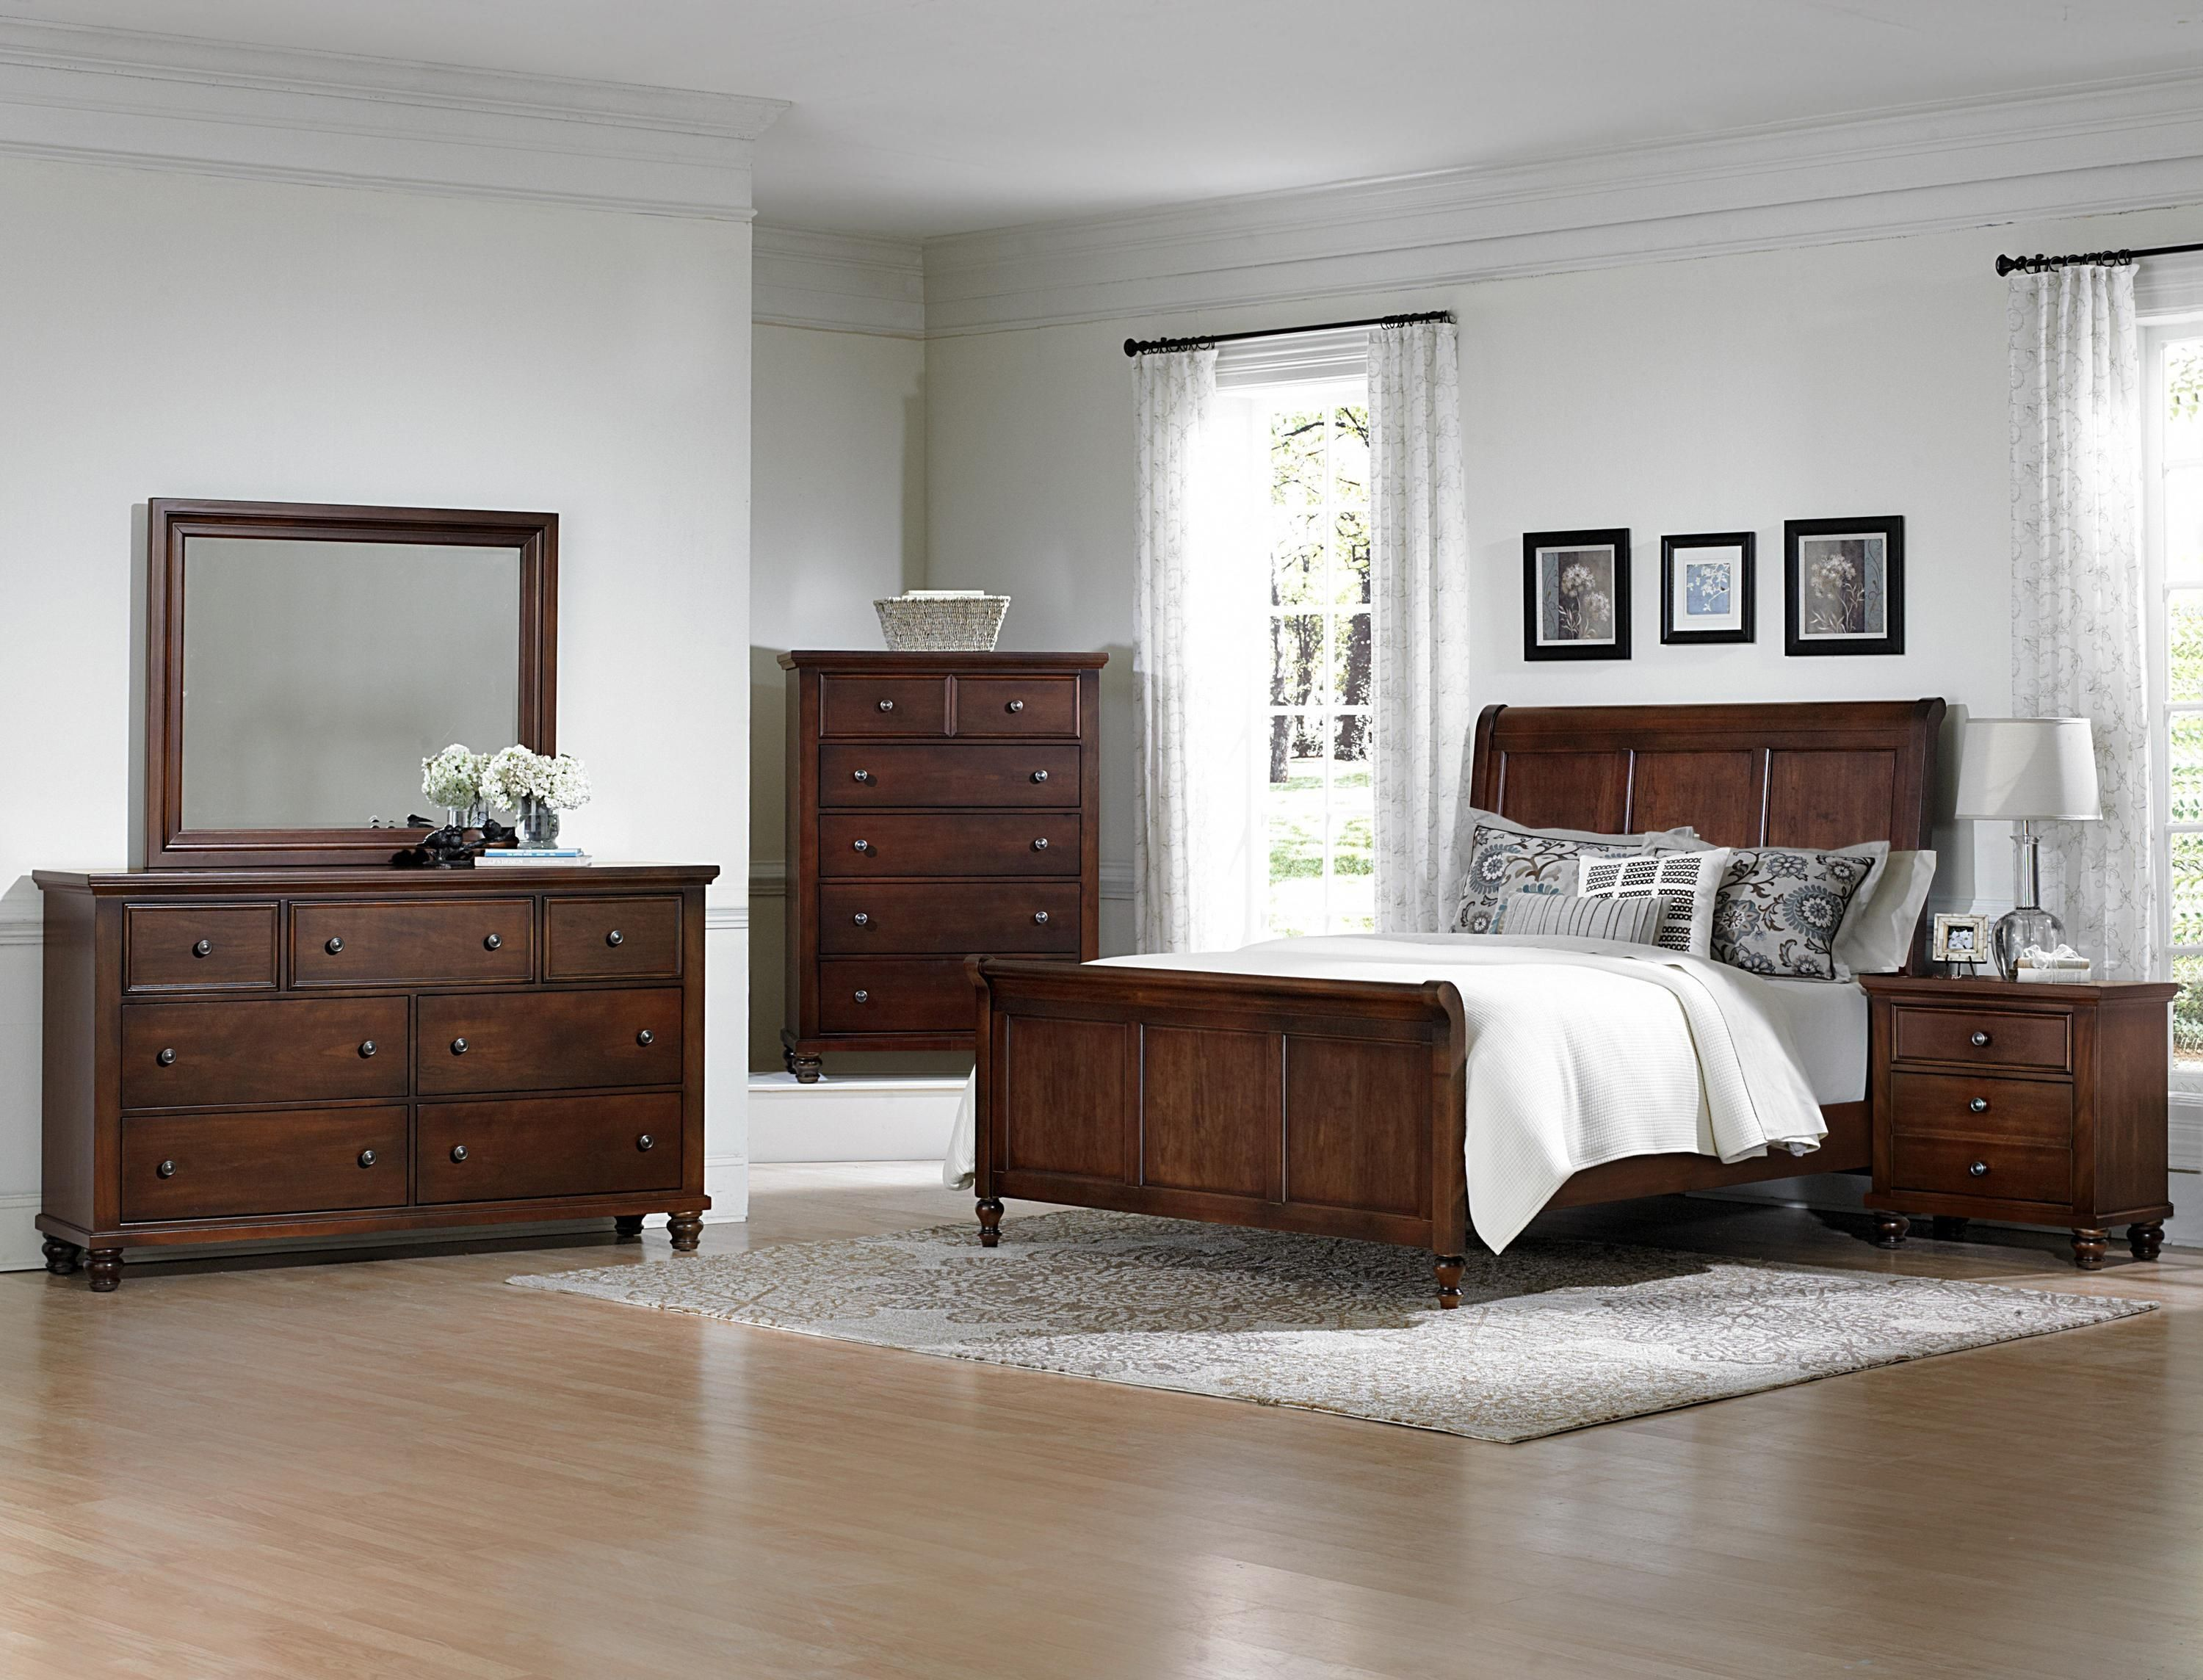 Ellington Queen Bedroom Group By Vaughan Bassett For The Home Pinterest Queen Bedroom